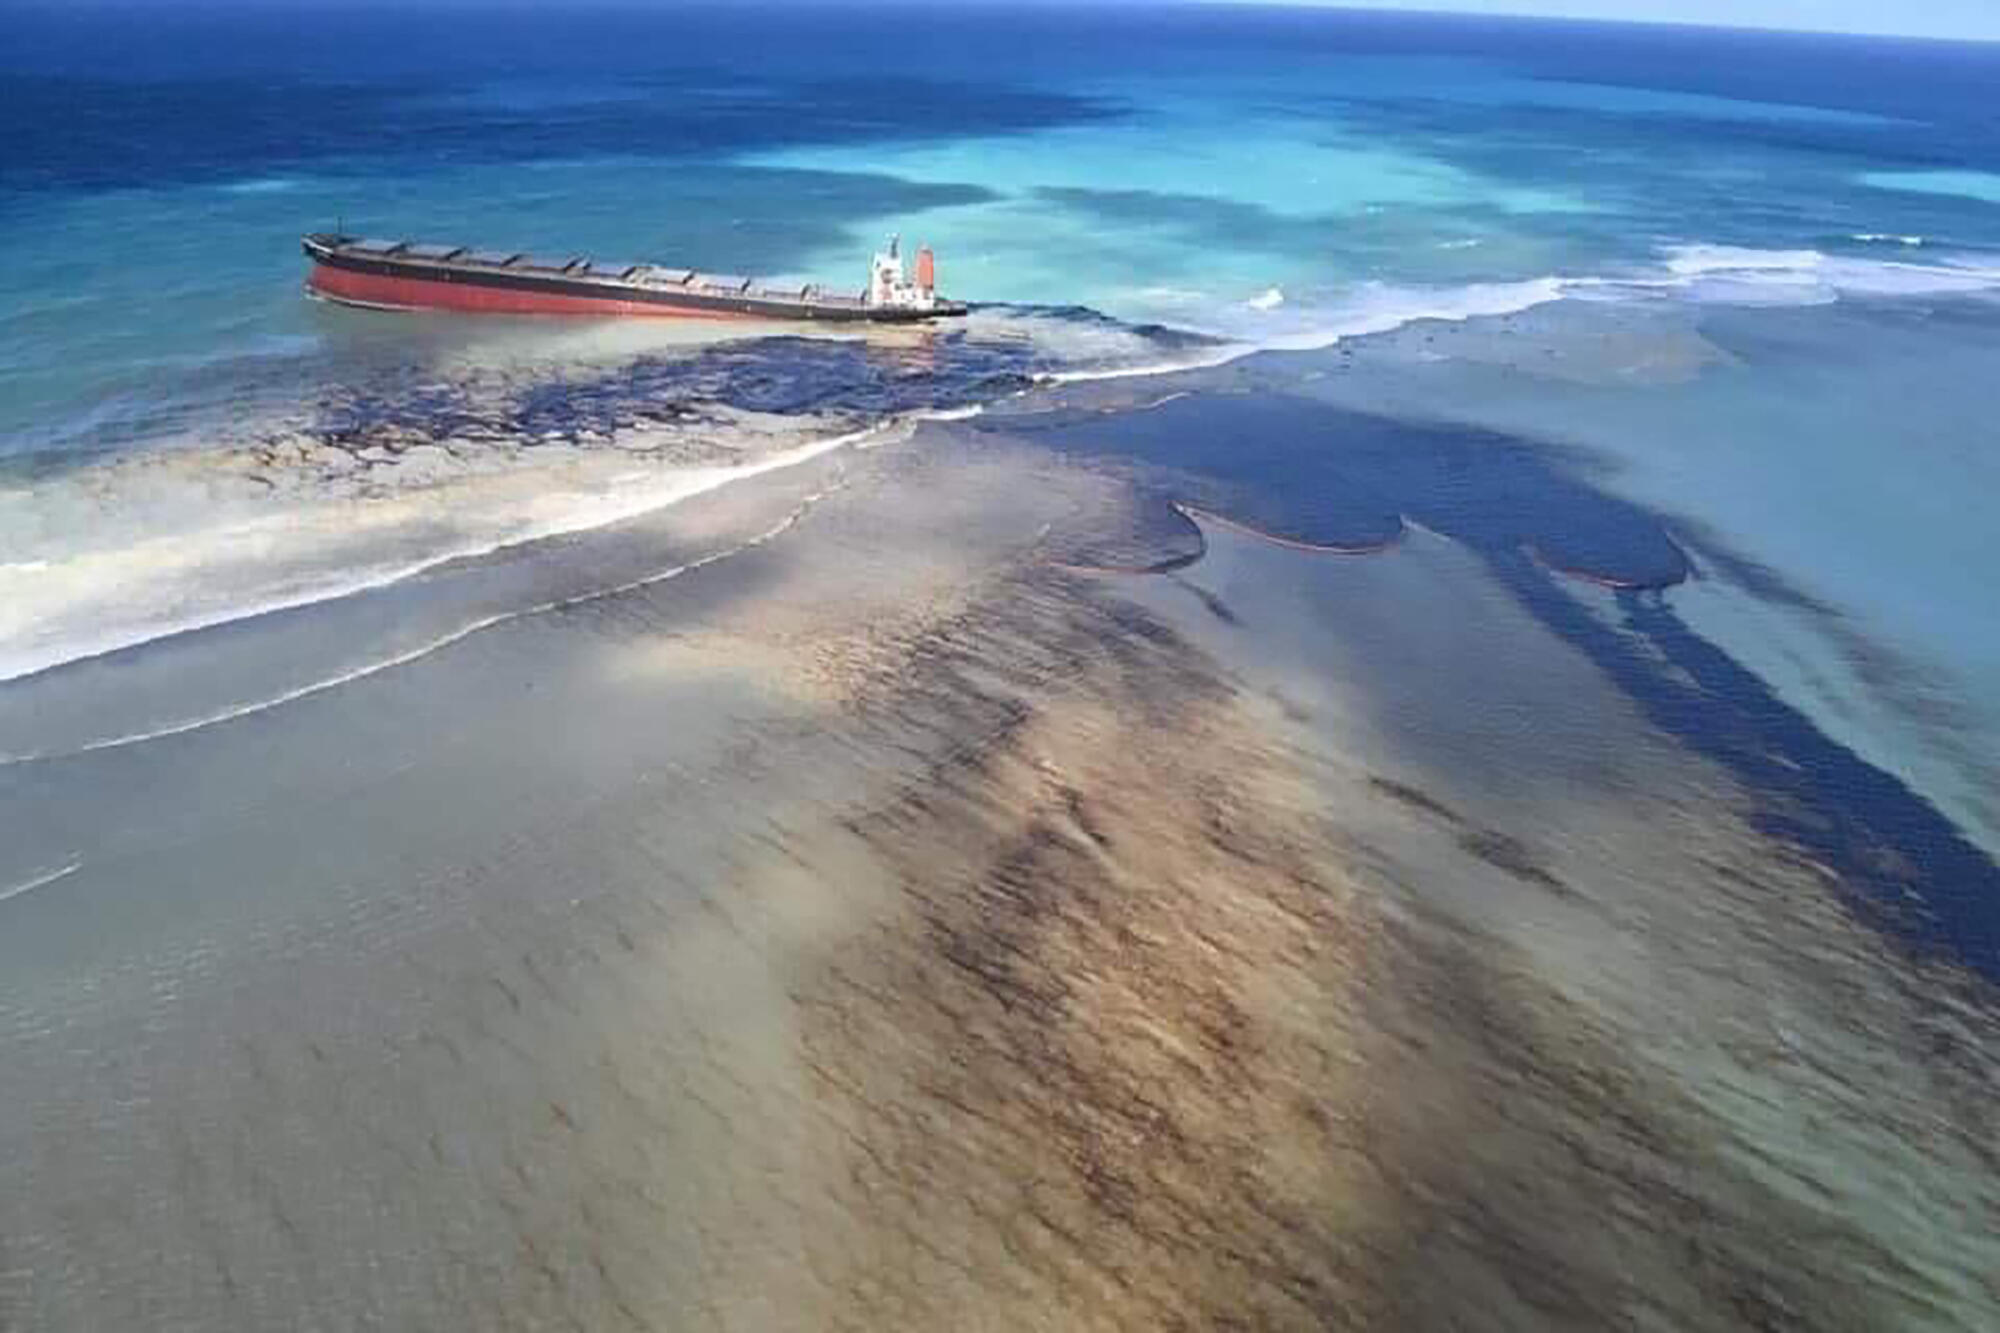 The Mauritian authorities announced on August 6 that oil was leaking from a bulk carrier stranded on a reef since the end of July on the south-eastern coast of the island, raising fears of an ecological disaster. The boat, owned by a Japanese shipowner but flying the Panamanian flag, was traveling empty but was carrying 200 tons of diesel and 3,800 tons of heavy oil, according to the local press. Its crew was evacuated. It ran aground on Esny Point, a Ramsar classified wetland like the nearby Blue Bay Marine Park and also threatened.